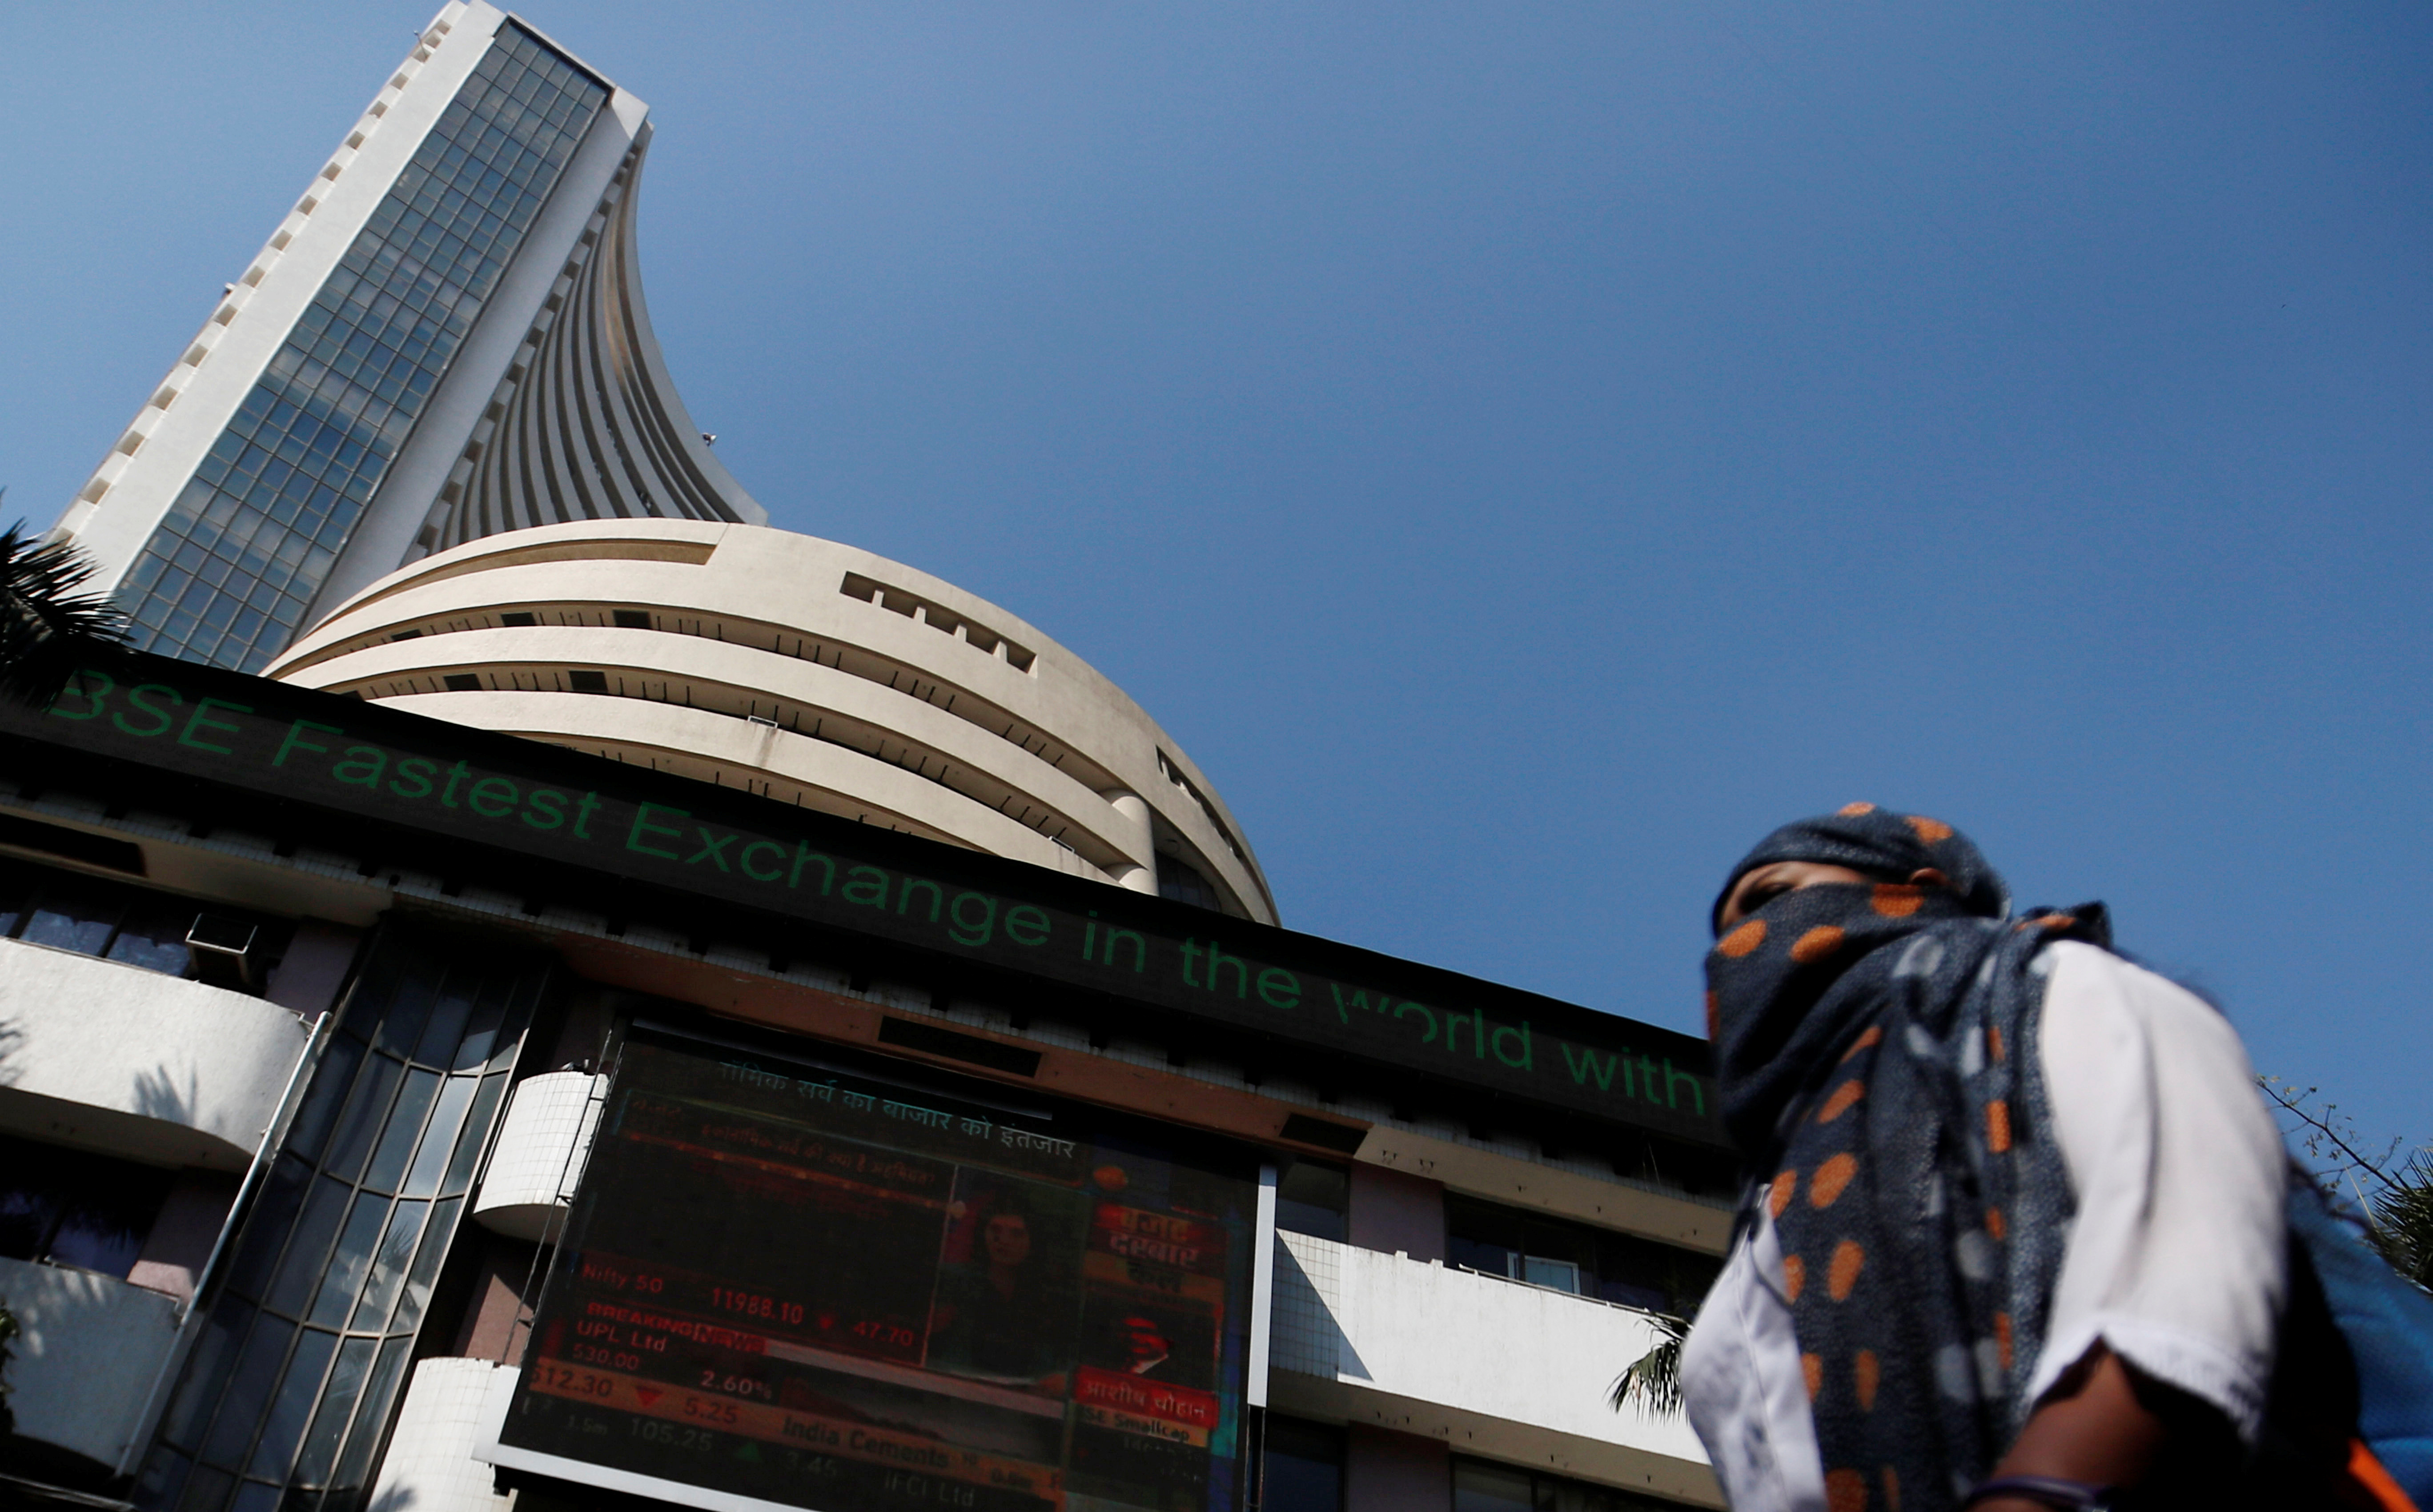 A woman walks past the Bombay Stock Exchange (BSE) building in Mumbai, India, January 31, 2020. REUTERS/Francis Mascarenhas/File Photo